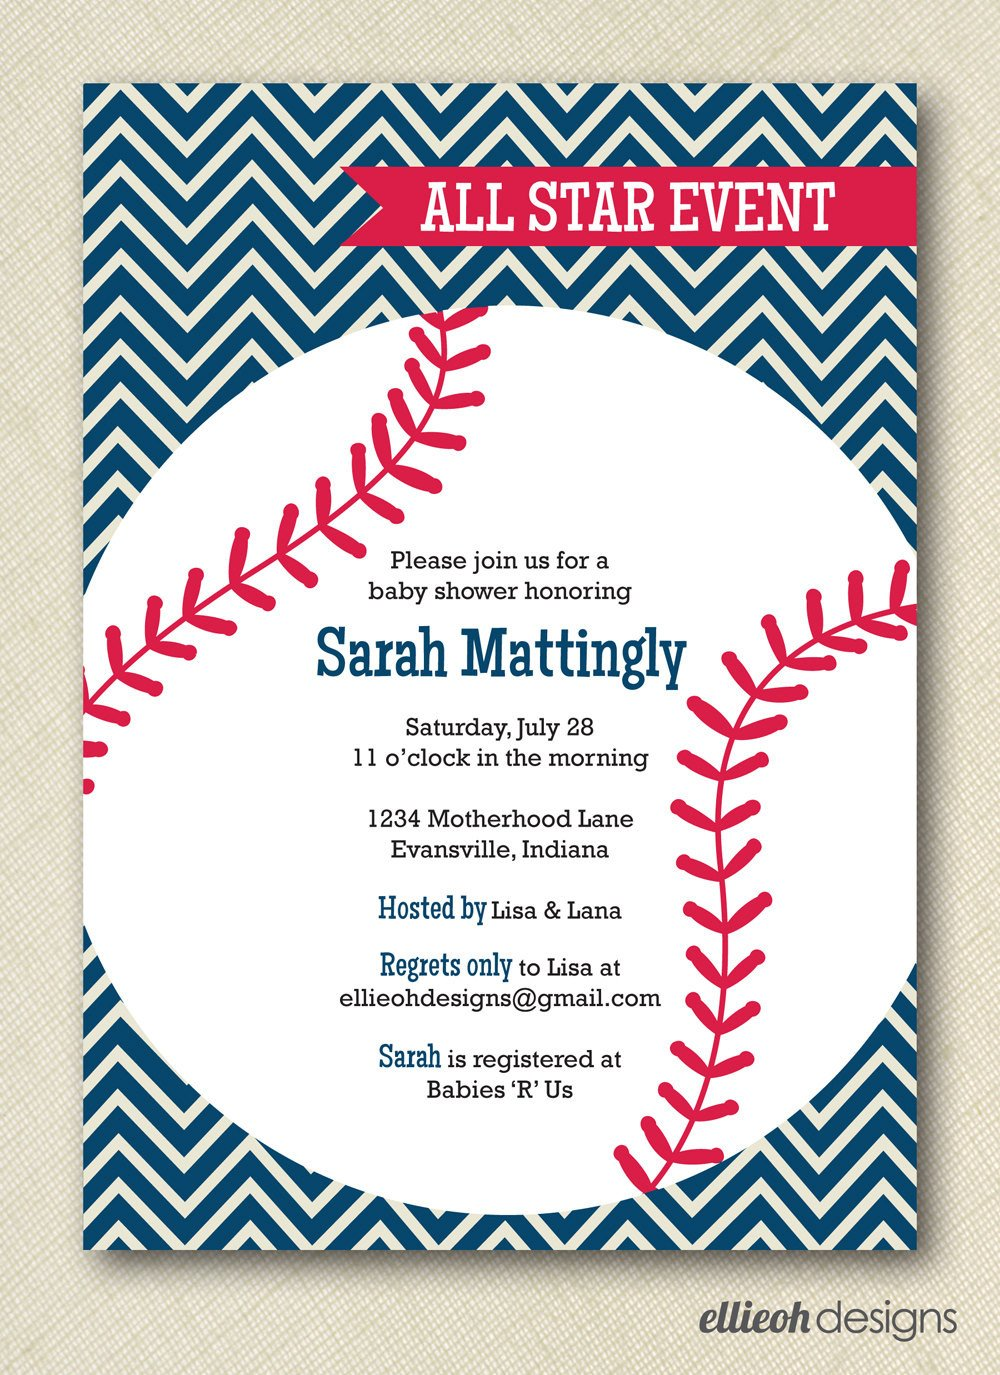 Baseball Invitation Template Free Free Printable Baseball Birthday Invitations – Free